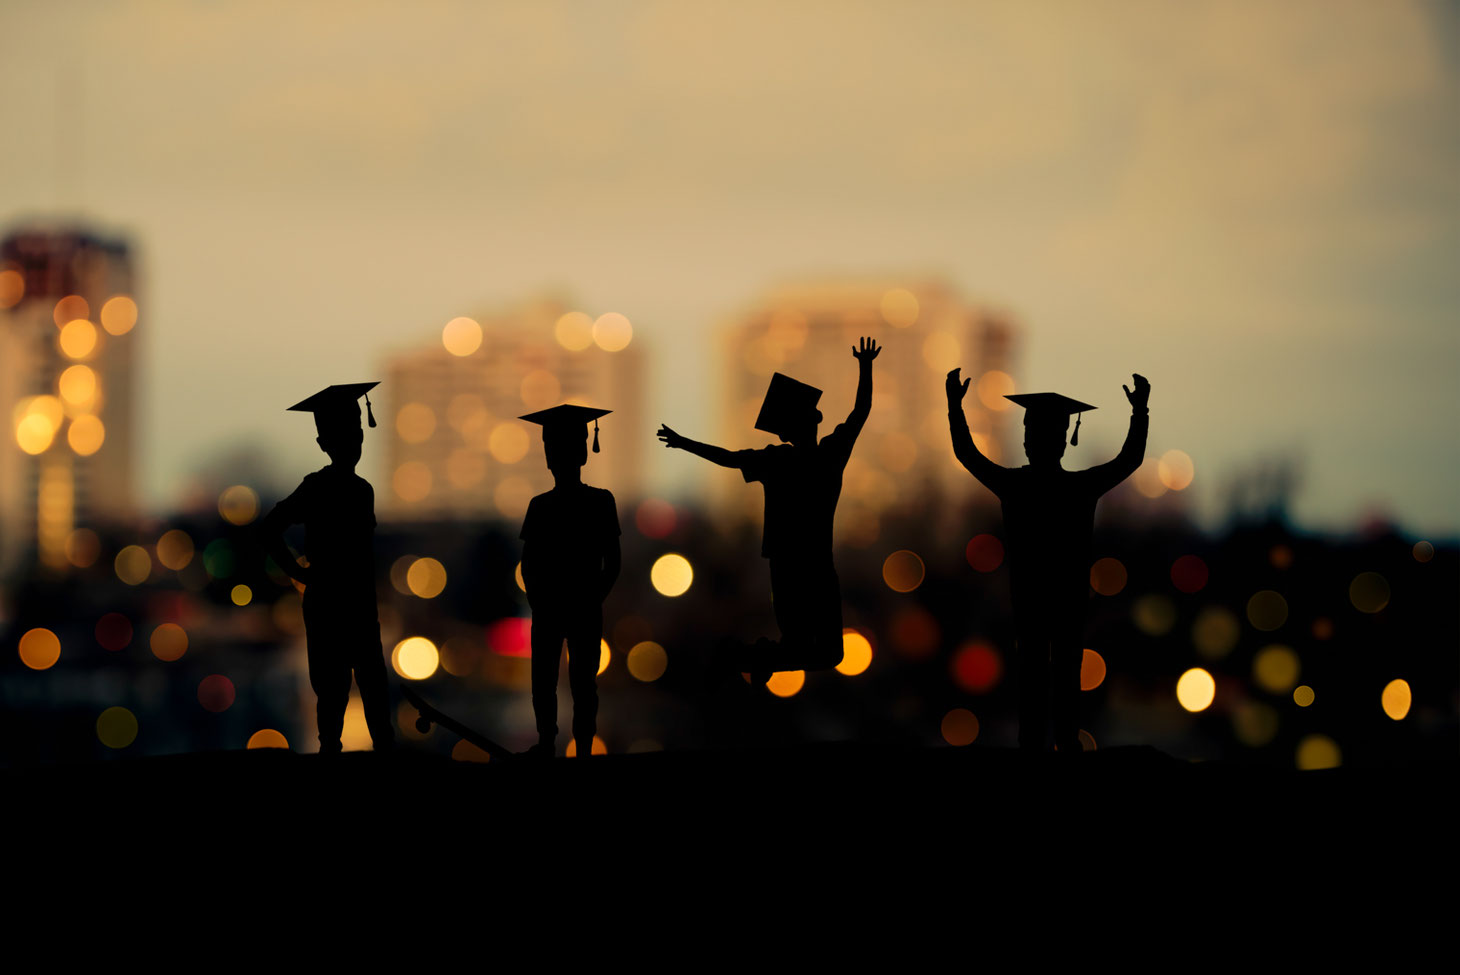 silhouettes of 4 boys in grad caps in front of a city view at sunset.